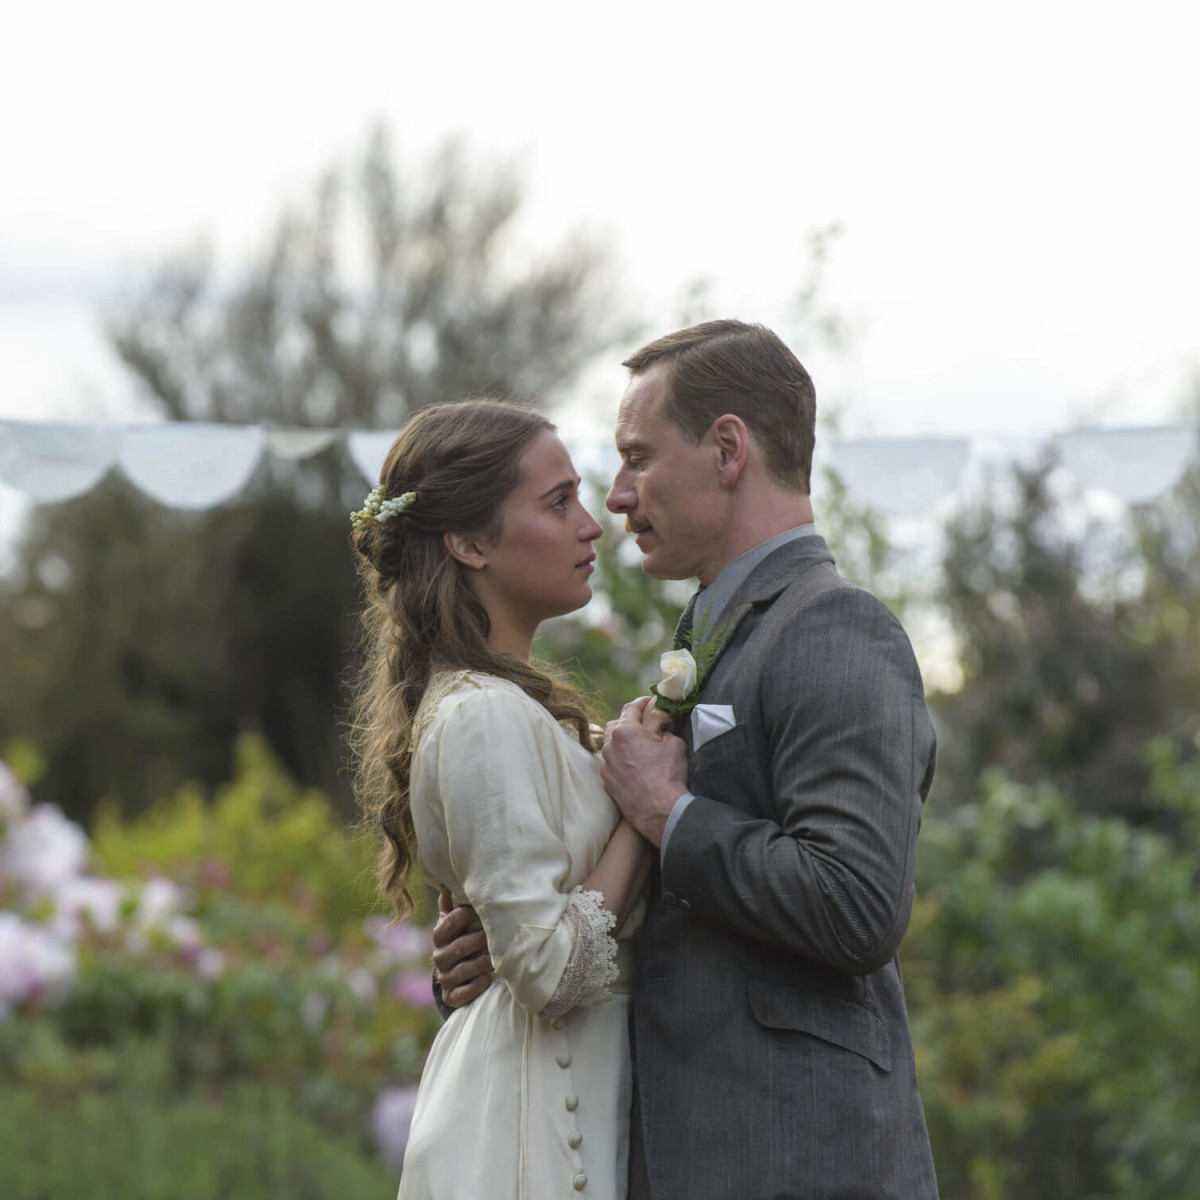 Alicia Vikander and Michael Fassbender in The Light Between Oceans